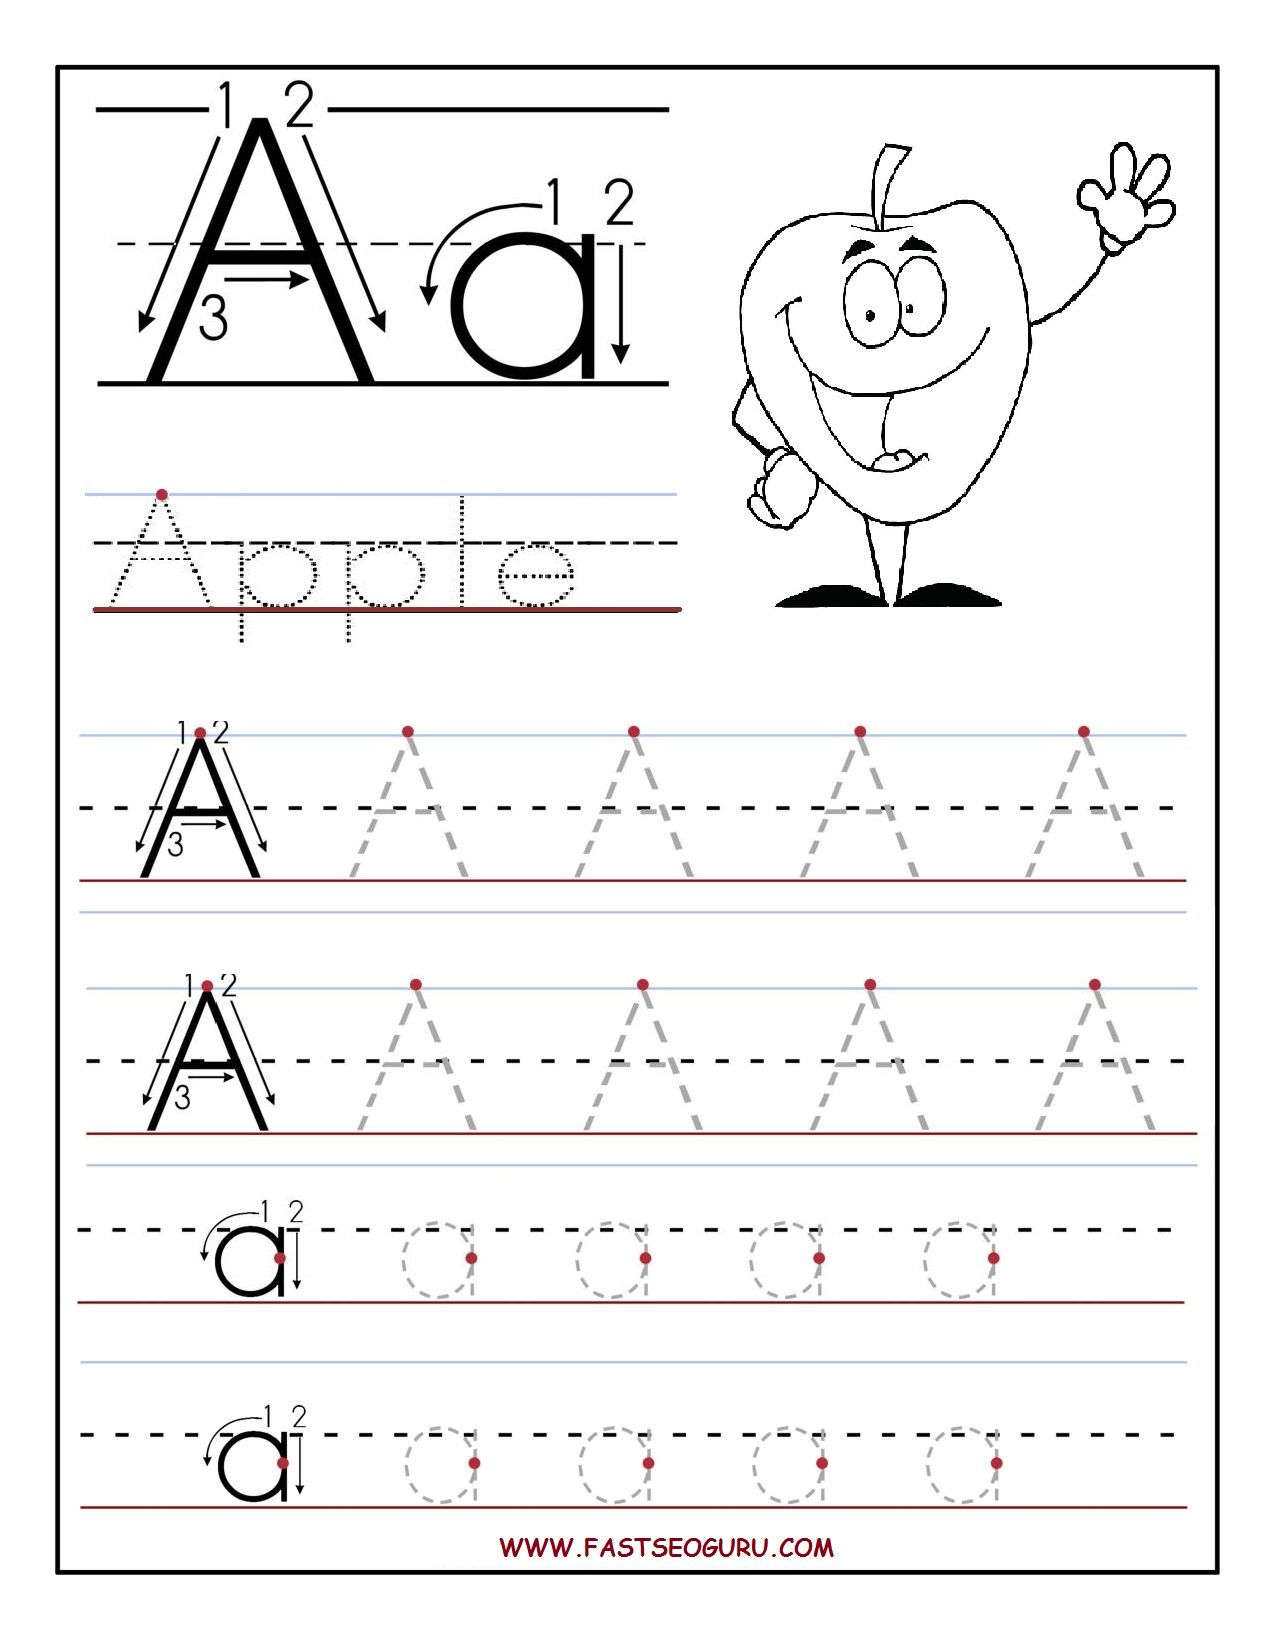 B>Free</b> <B>Printable</b> Letter A Tracing <B>Worksheets</b - Free Printable Activities For Preschoolers